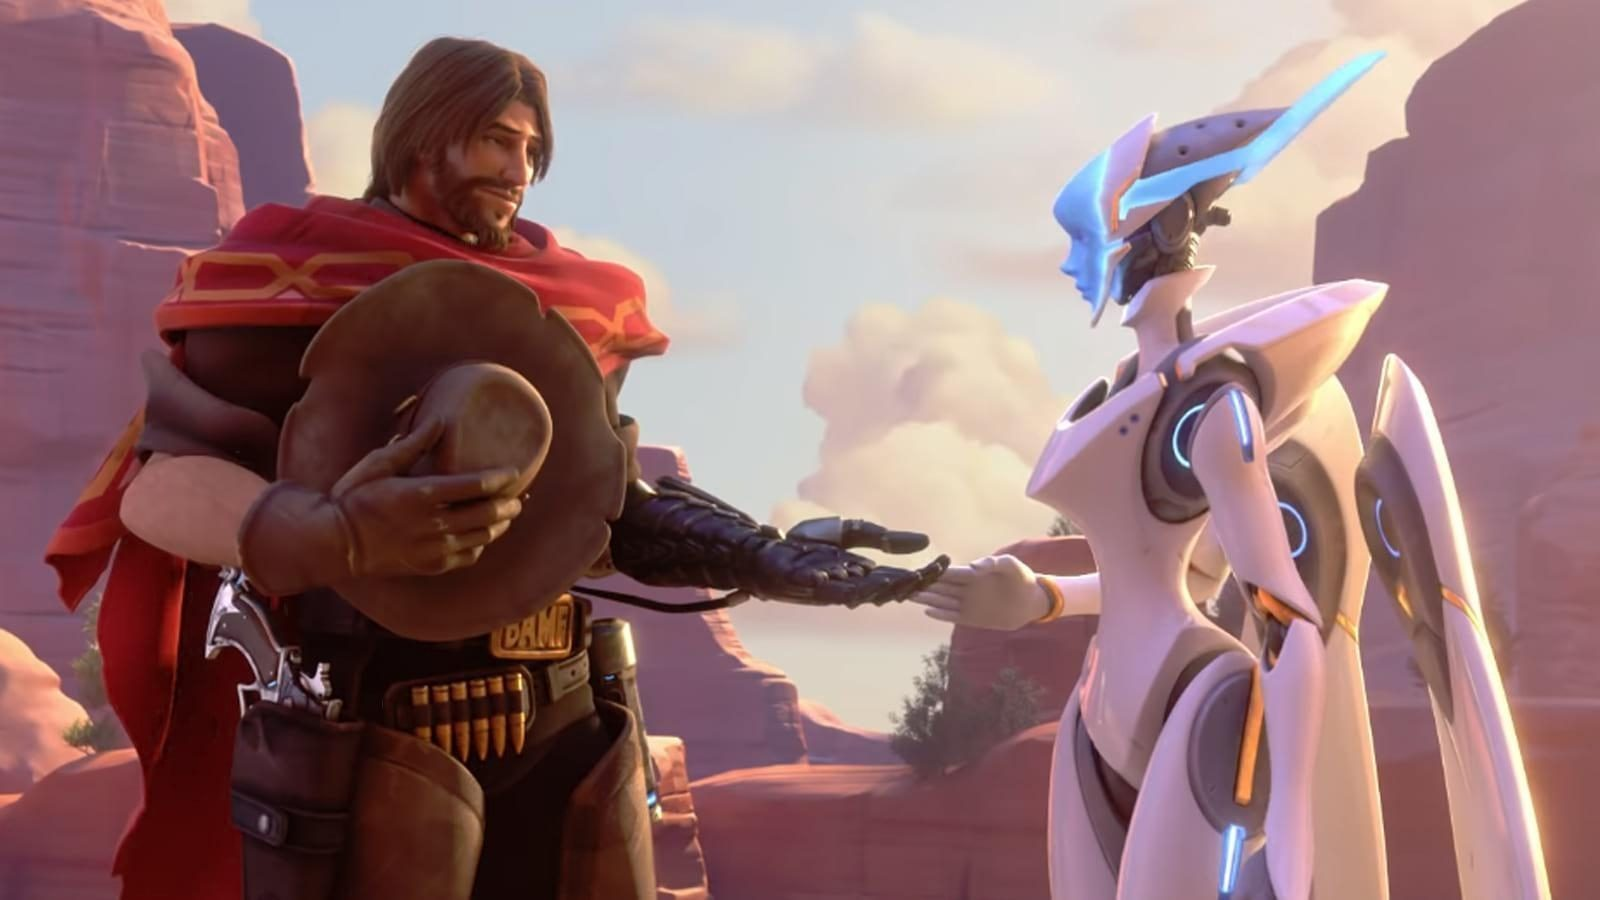 Leaked document suggests Overwatch 2 will be formally announced at BlizzCon 2019